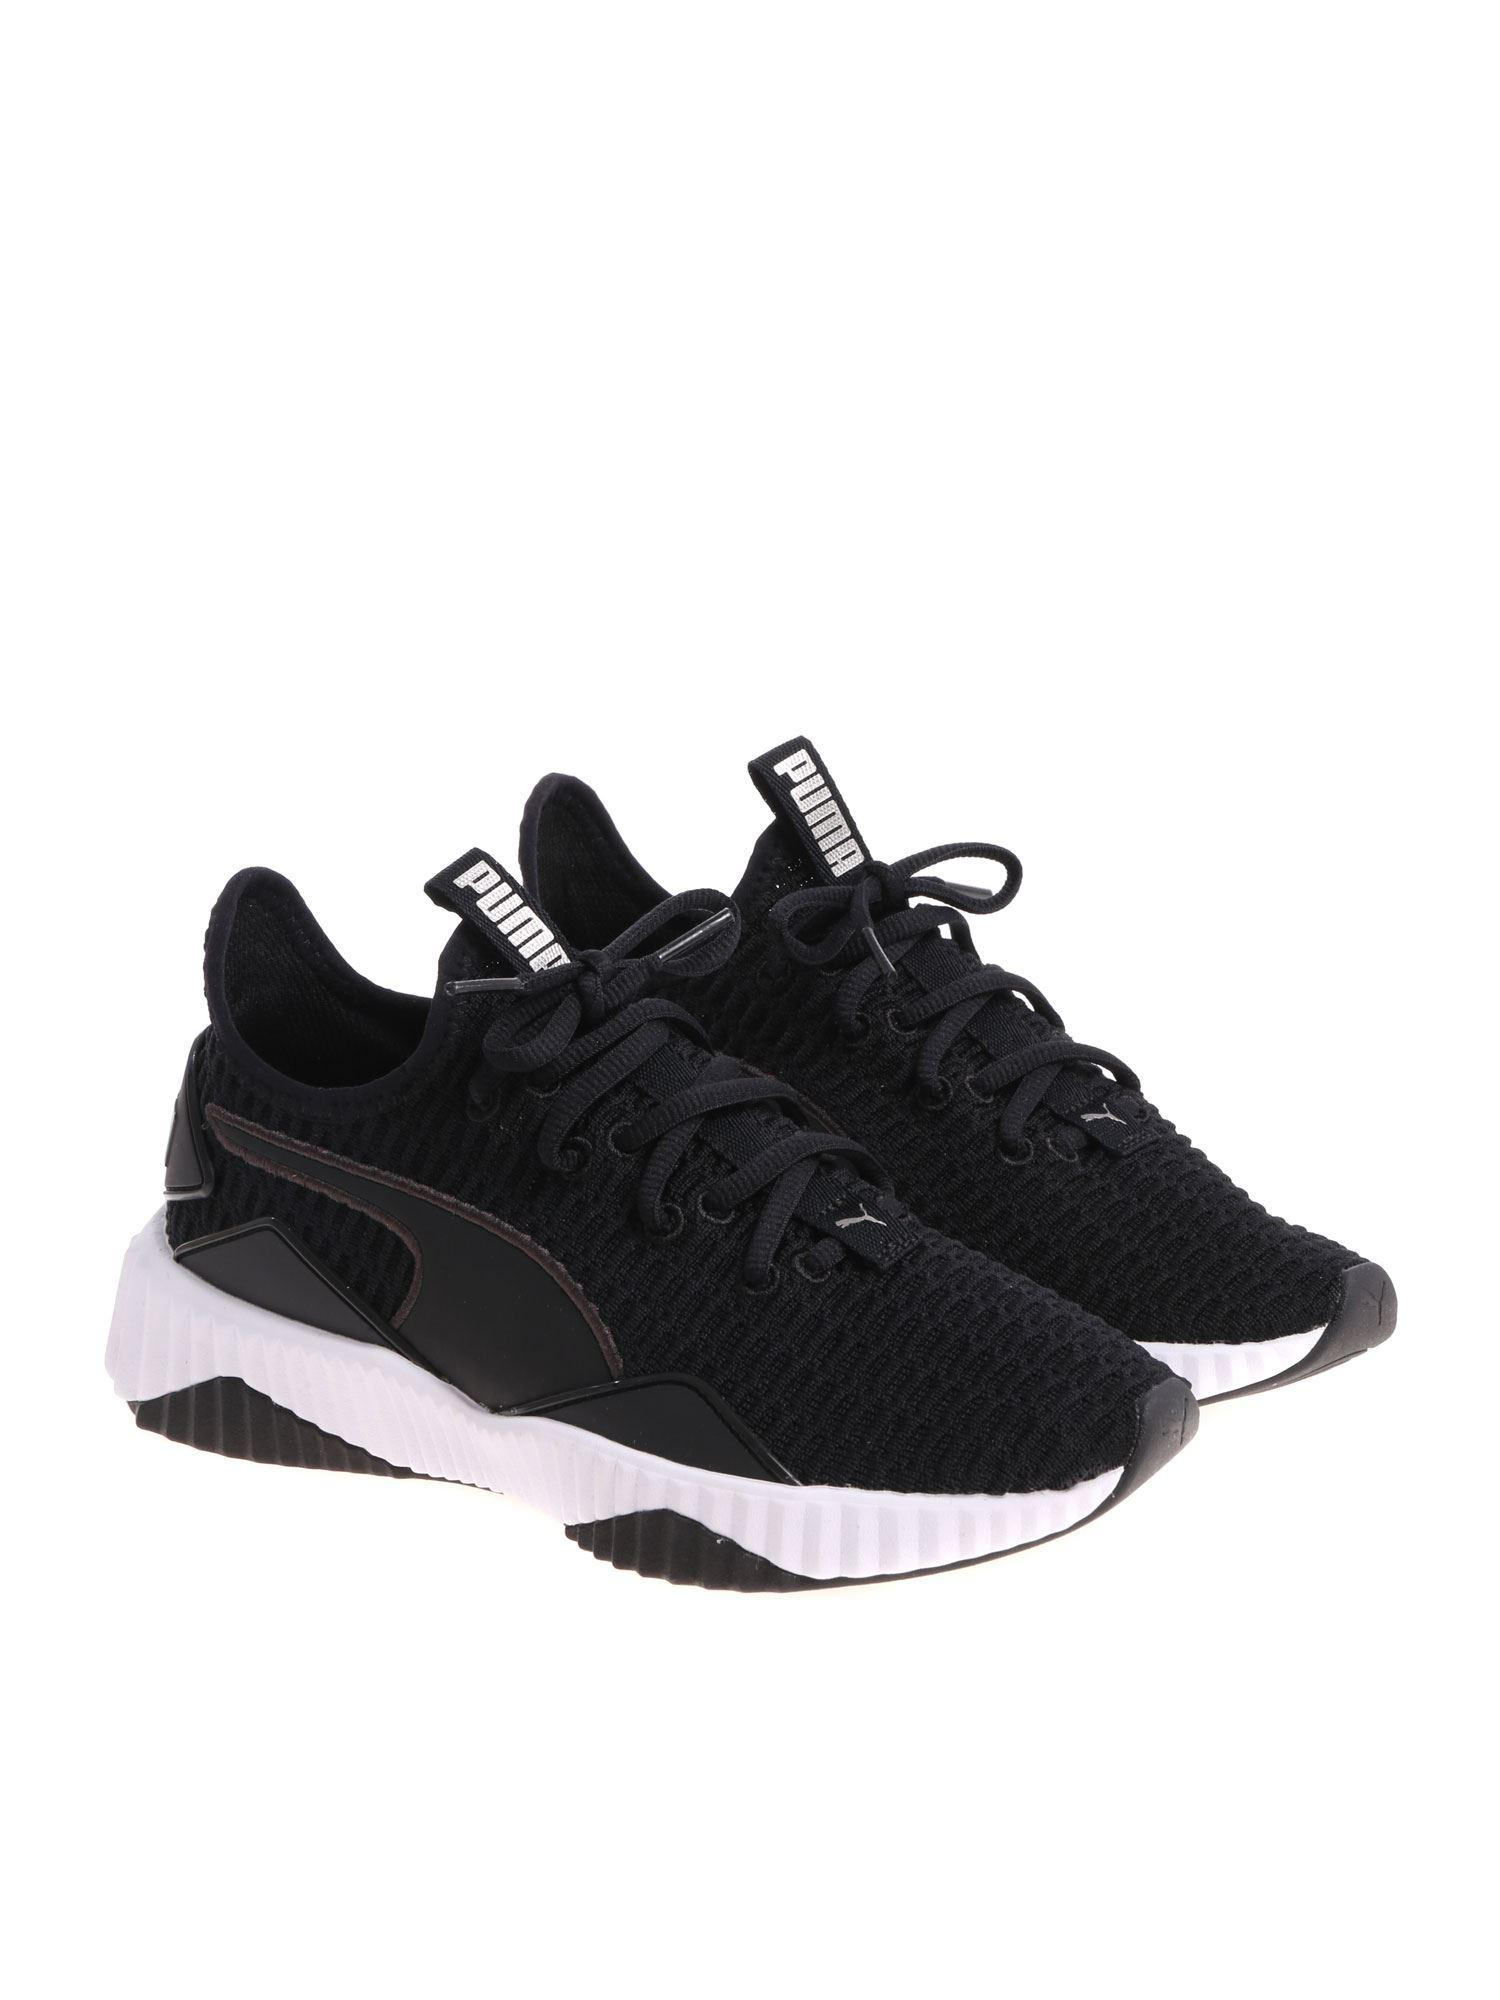 cac4958ae7dbe6 PUMA Black And White Defy Sneakers in Black - Lyst